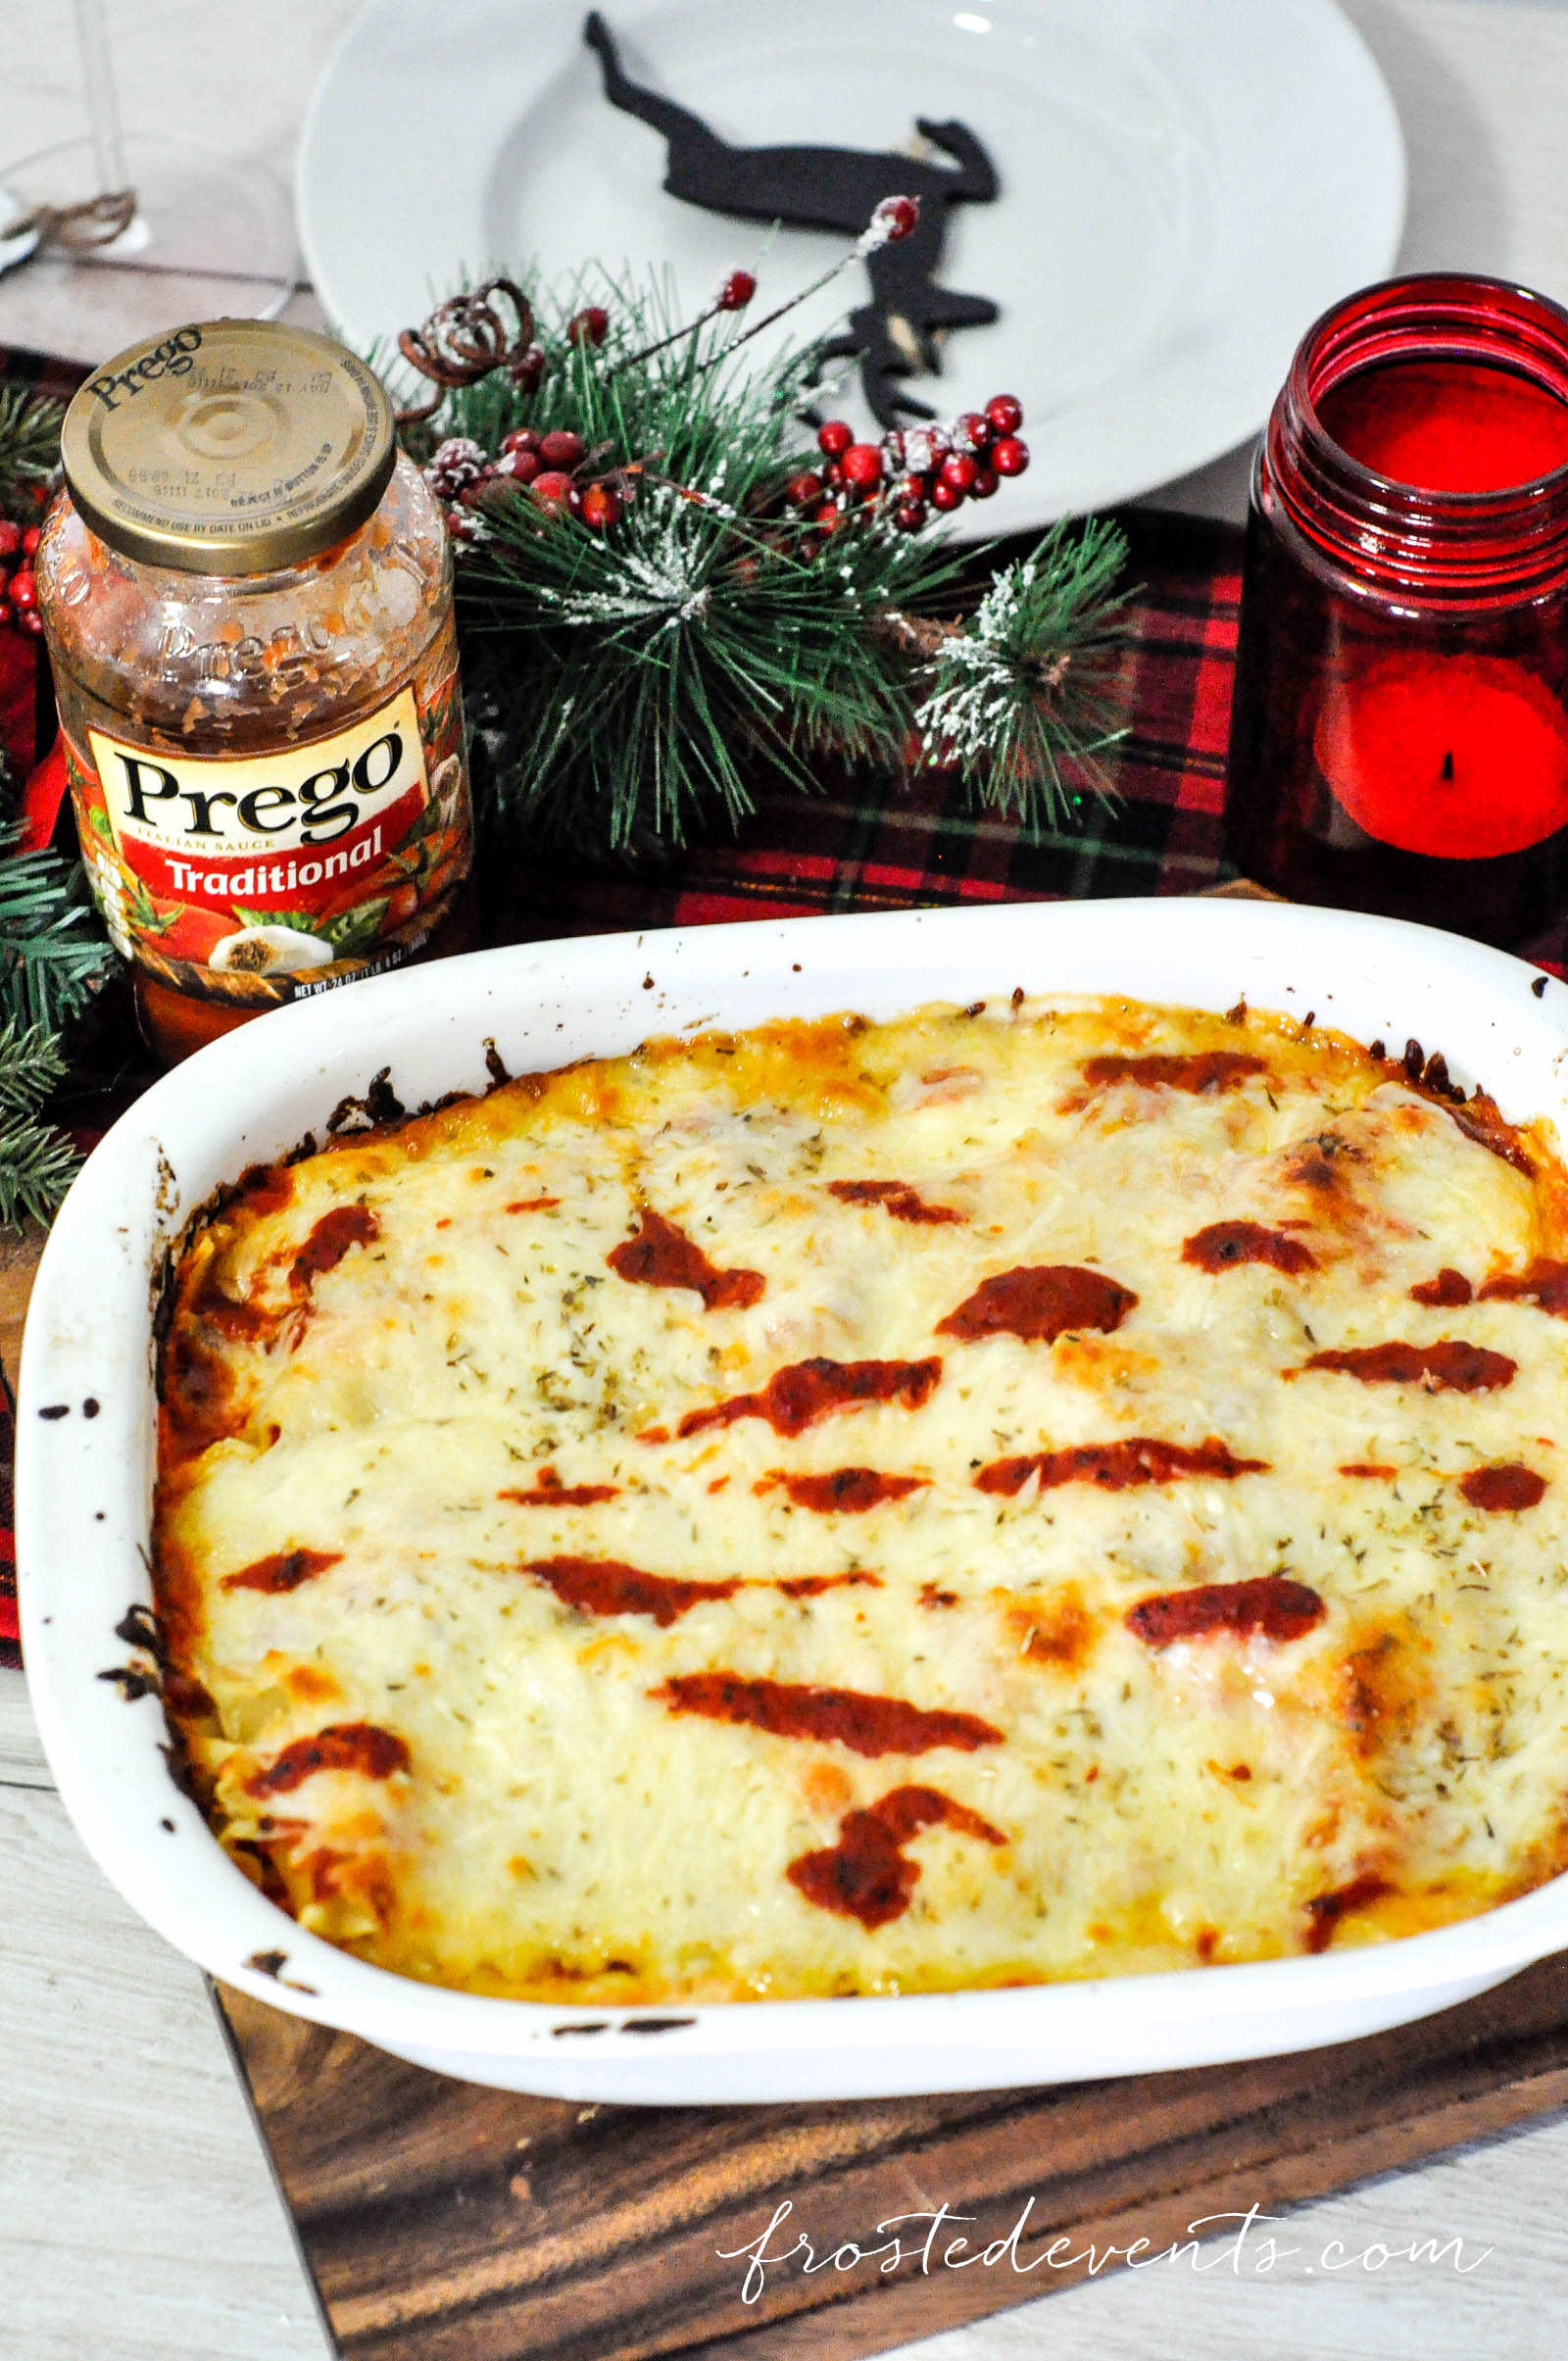 Best Lasagna Recipe for a Happy Holiday Dinner Lasagna Bread Recipe with Prego Sauce